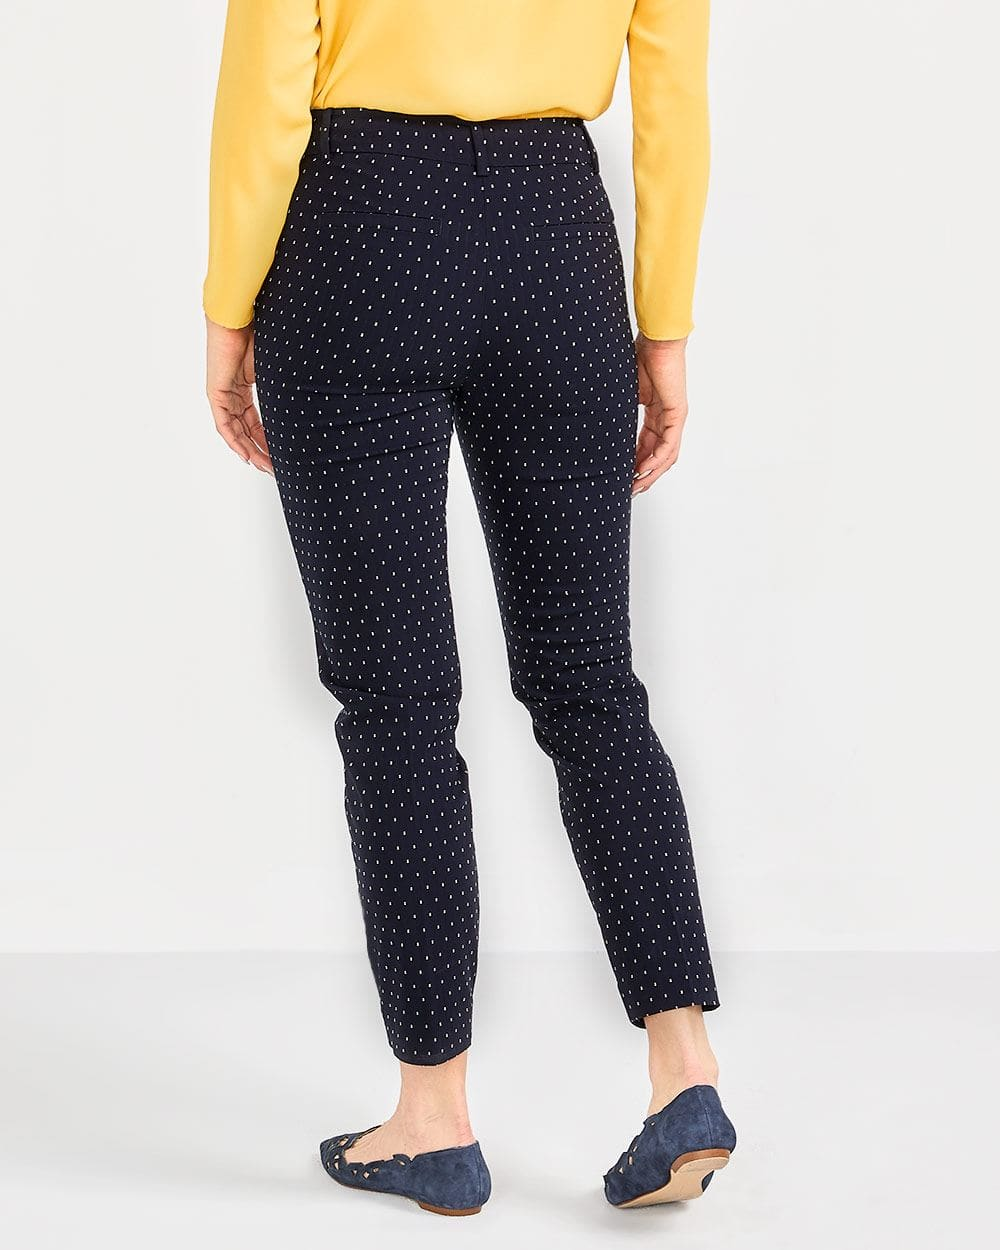 The Tall Iconic Polka Dot Ankle Pants